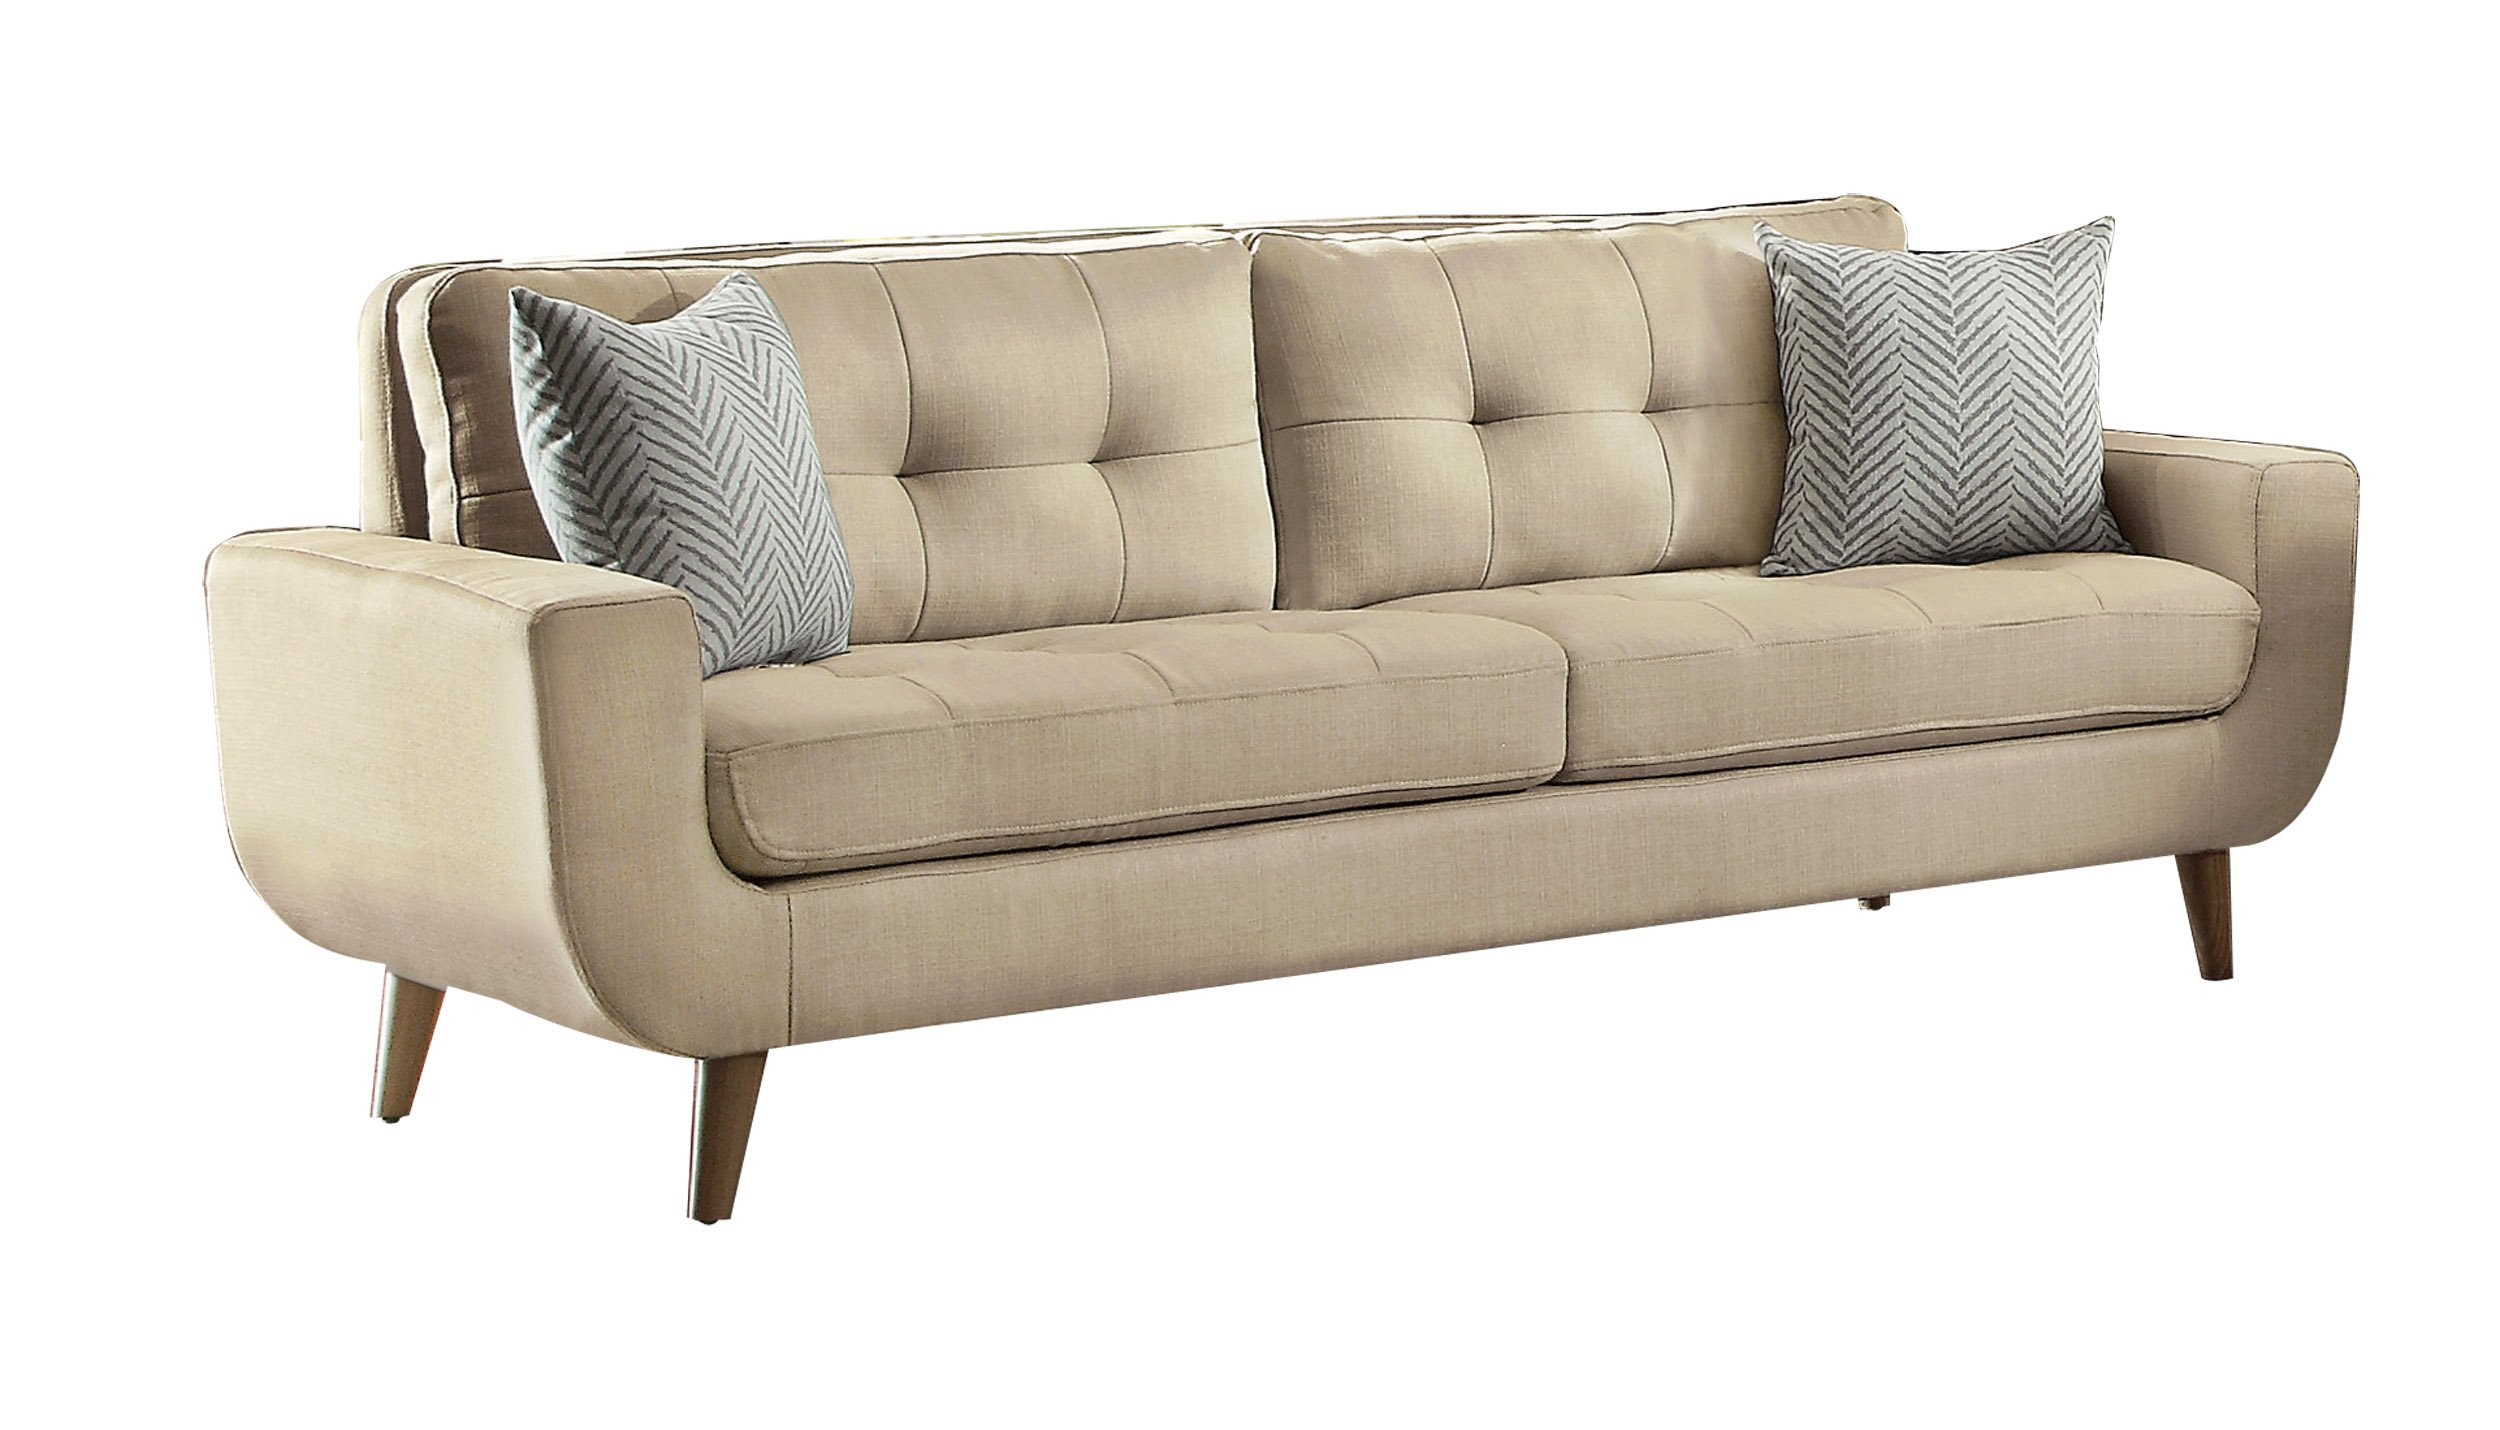 Homelegance Deryn Mid-Century Modern Sofa with Tufted Back and Two Herringbone Throw Pillows, Beige